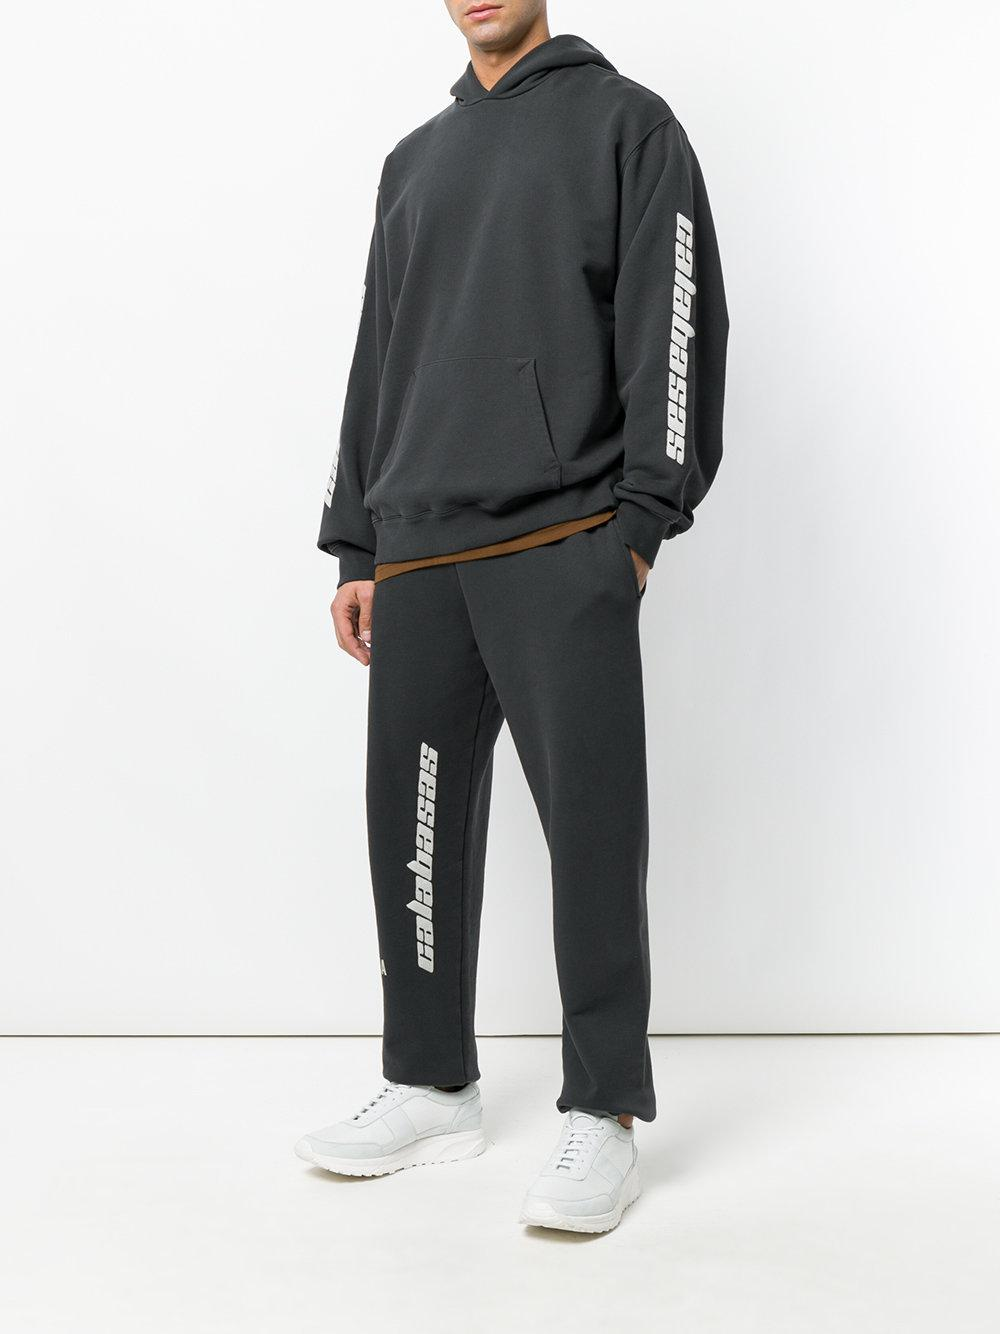 calabasas men Buy yeezy black 'calabasas' sweatpants on ssensecom and get free shipping & returns in us relaxed-fit garment-washed cotton french terry lounge pants in 'ink' black.